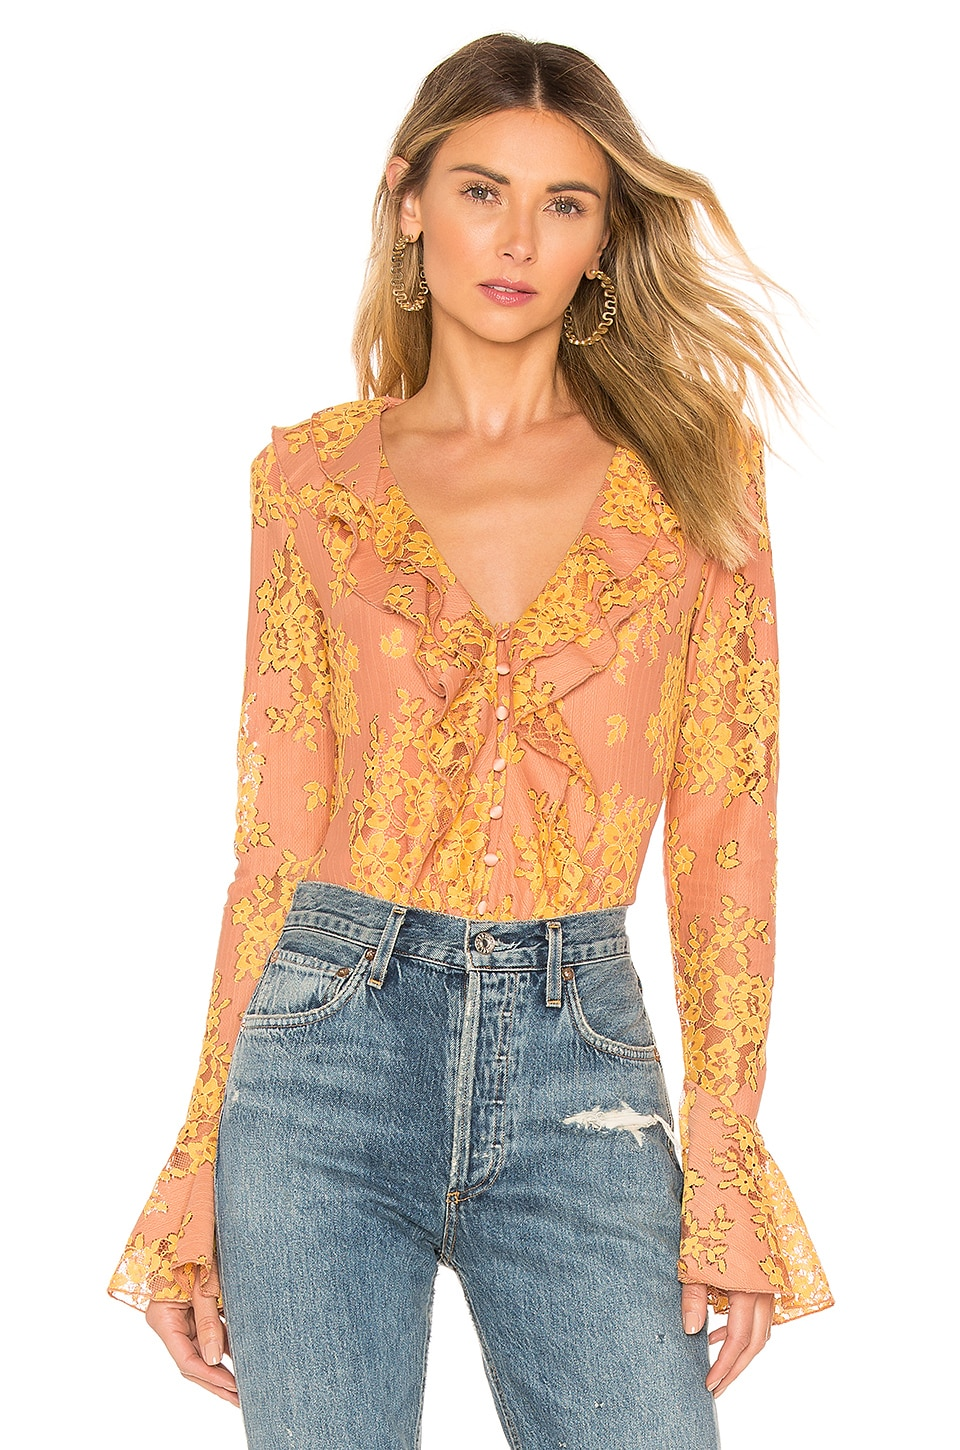 MAJORELLE Roma Top in Golden Blush